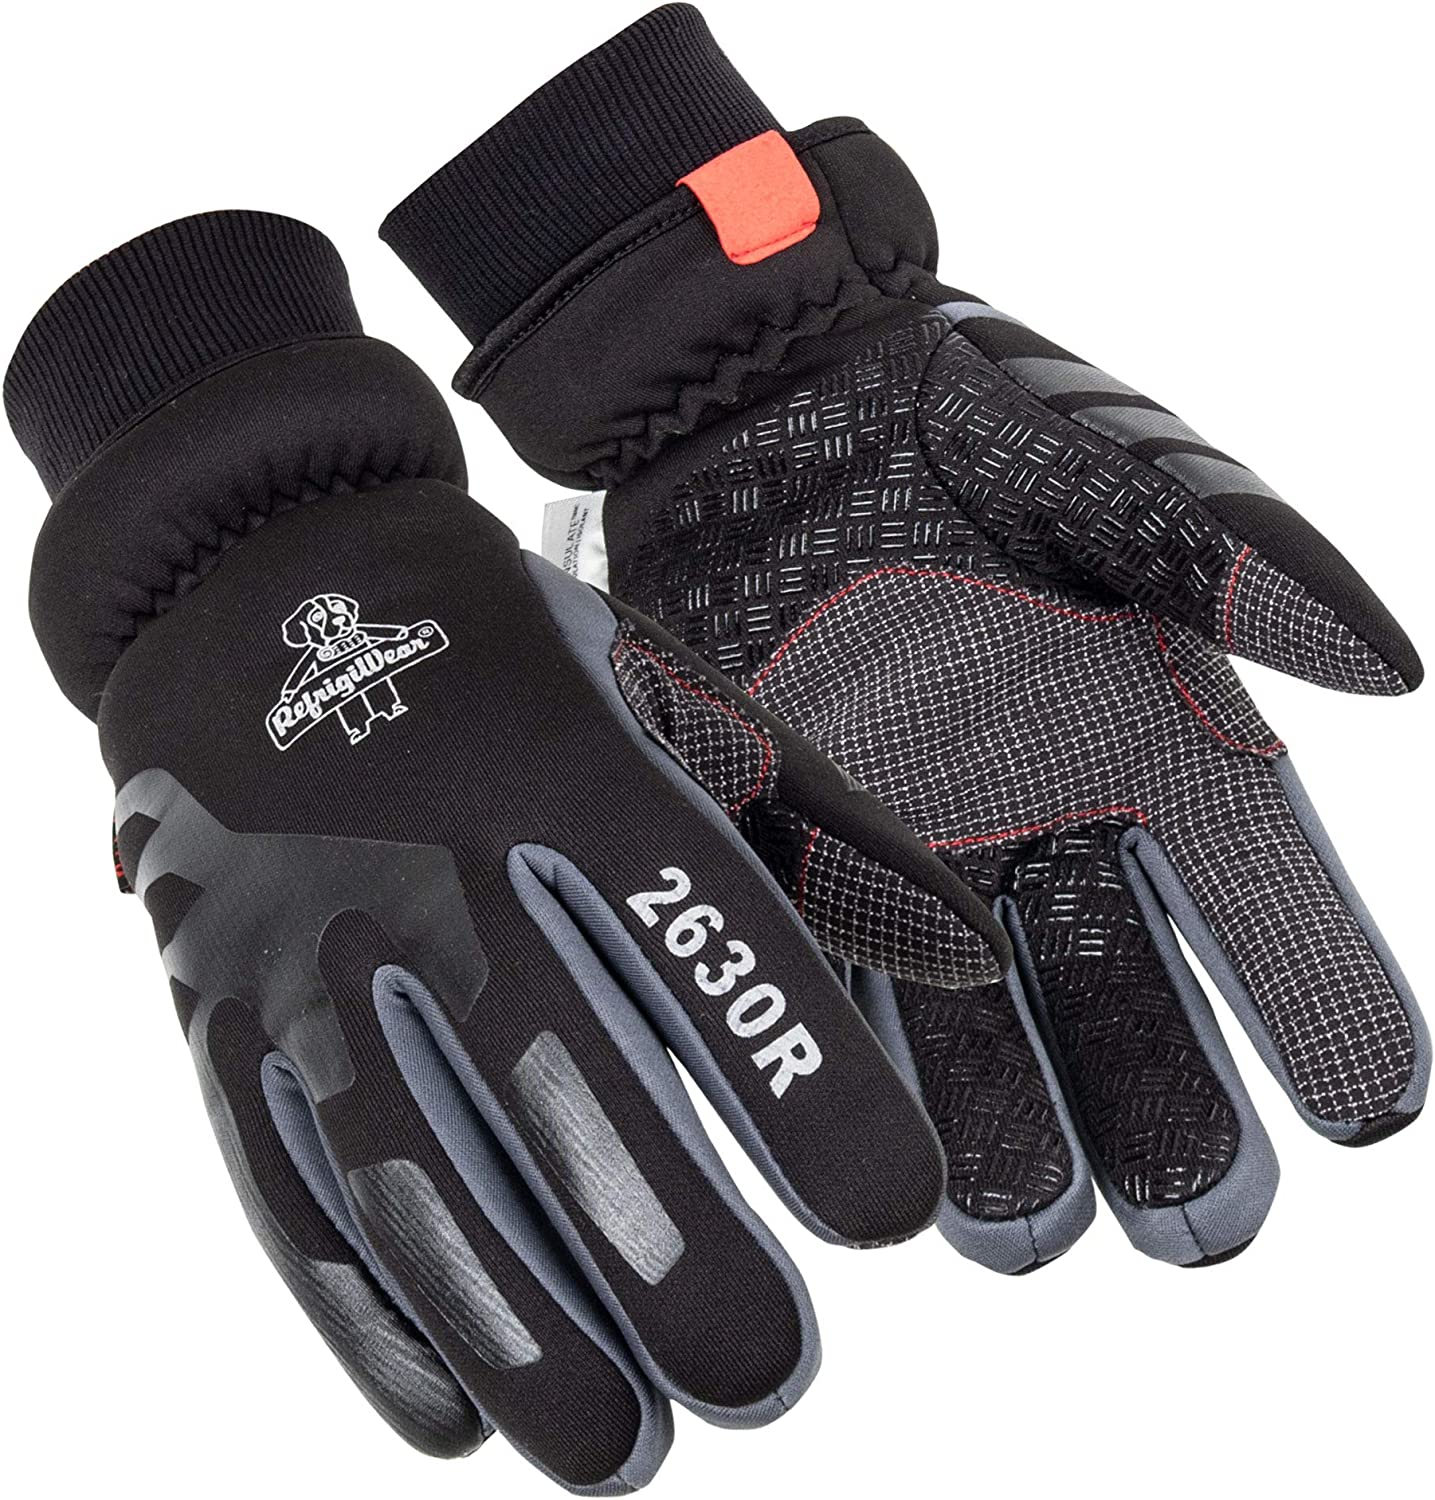 RefrigiWear Womens Thinsulate Insulated Softshell Gloves with Silicone Grip